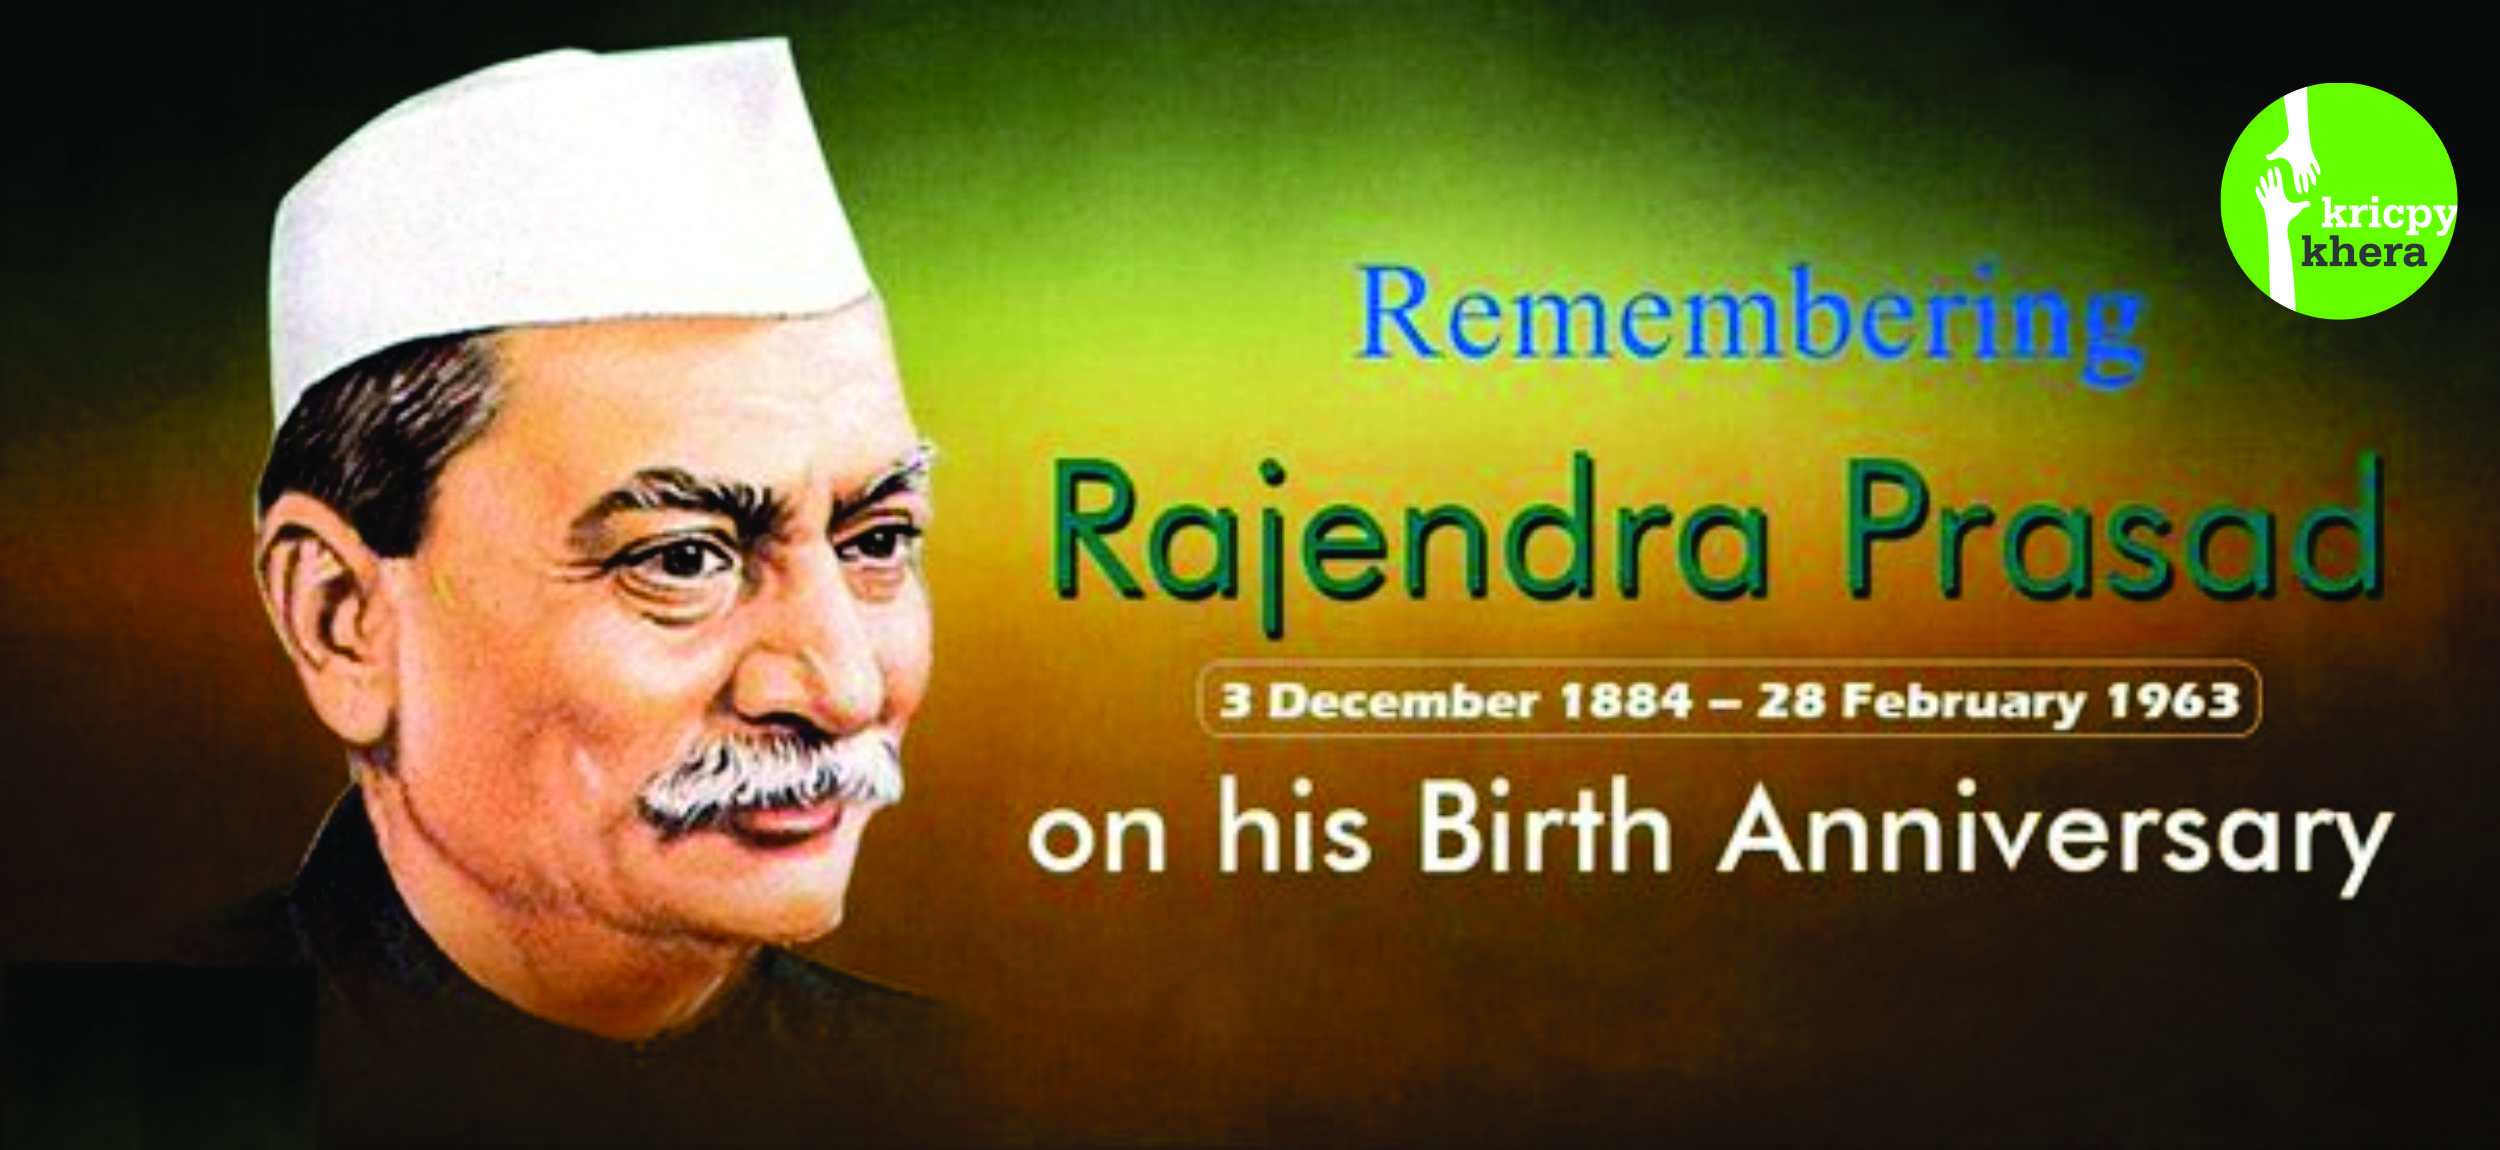 We Pay Tribute To The First President Of India Dr